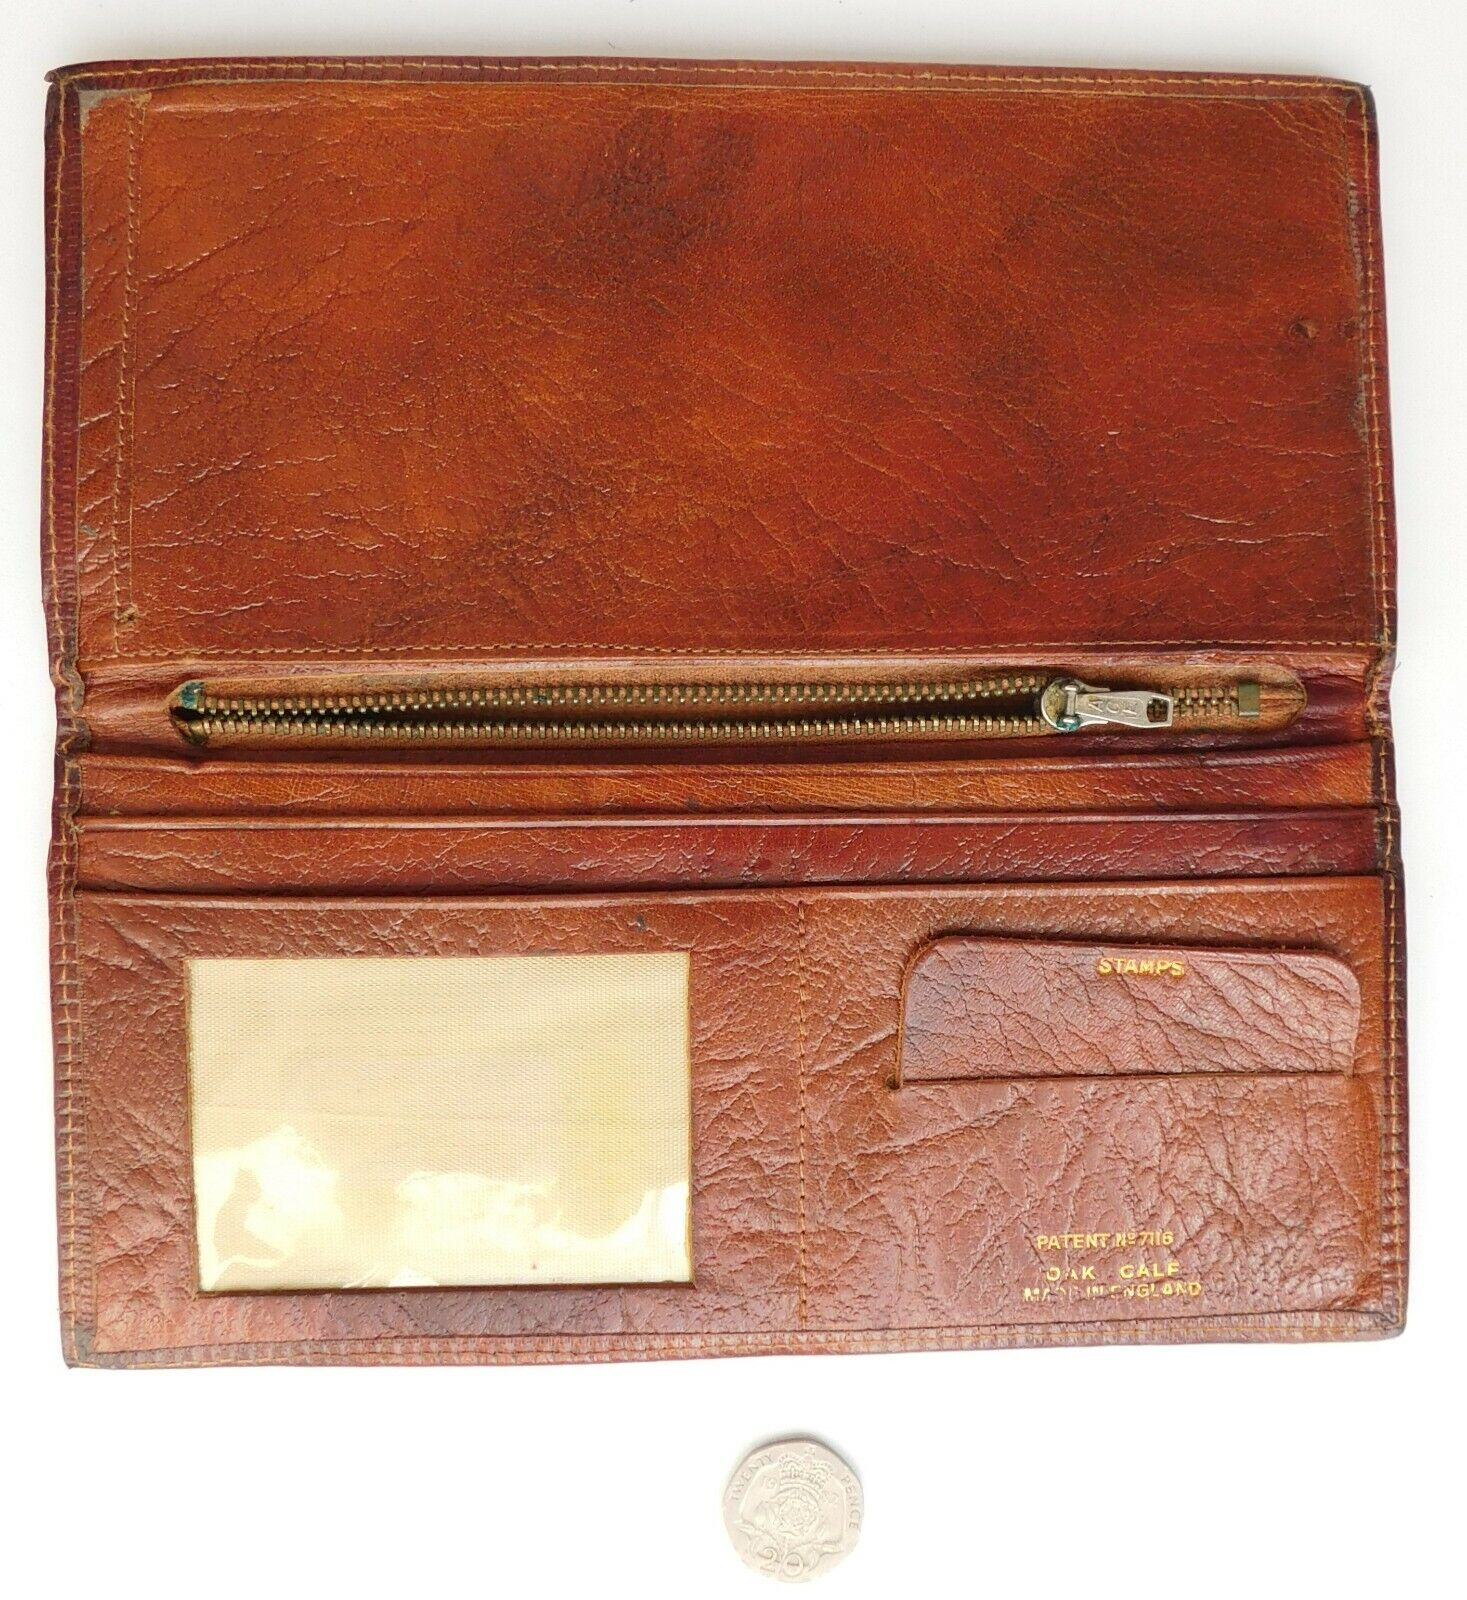 Vintage oak calf leather wallet with holders for postage stamps and cheque book